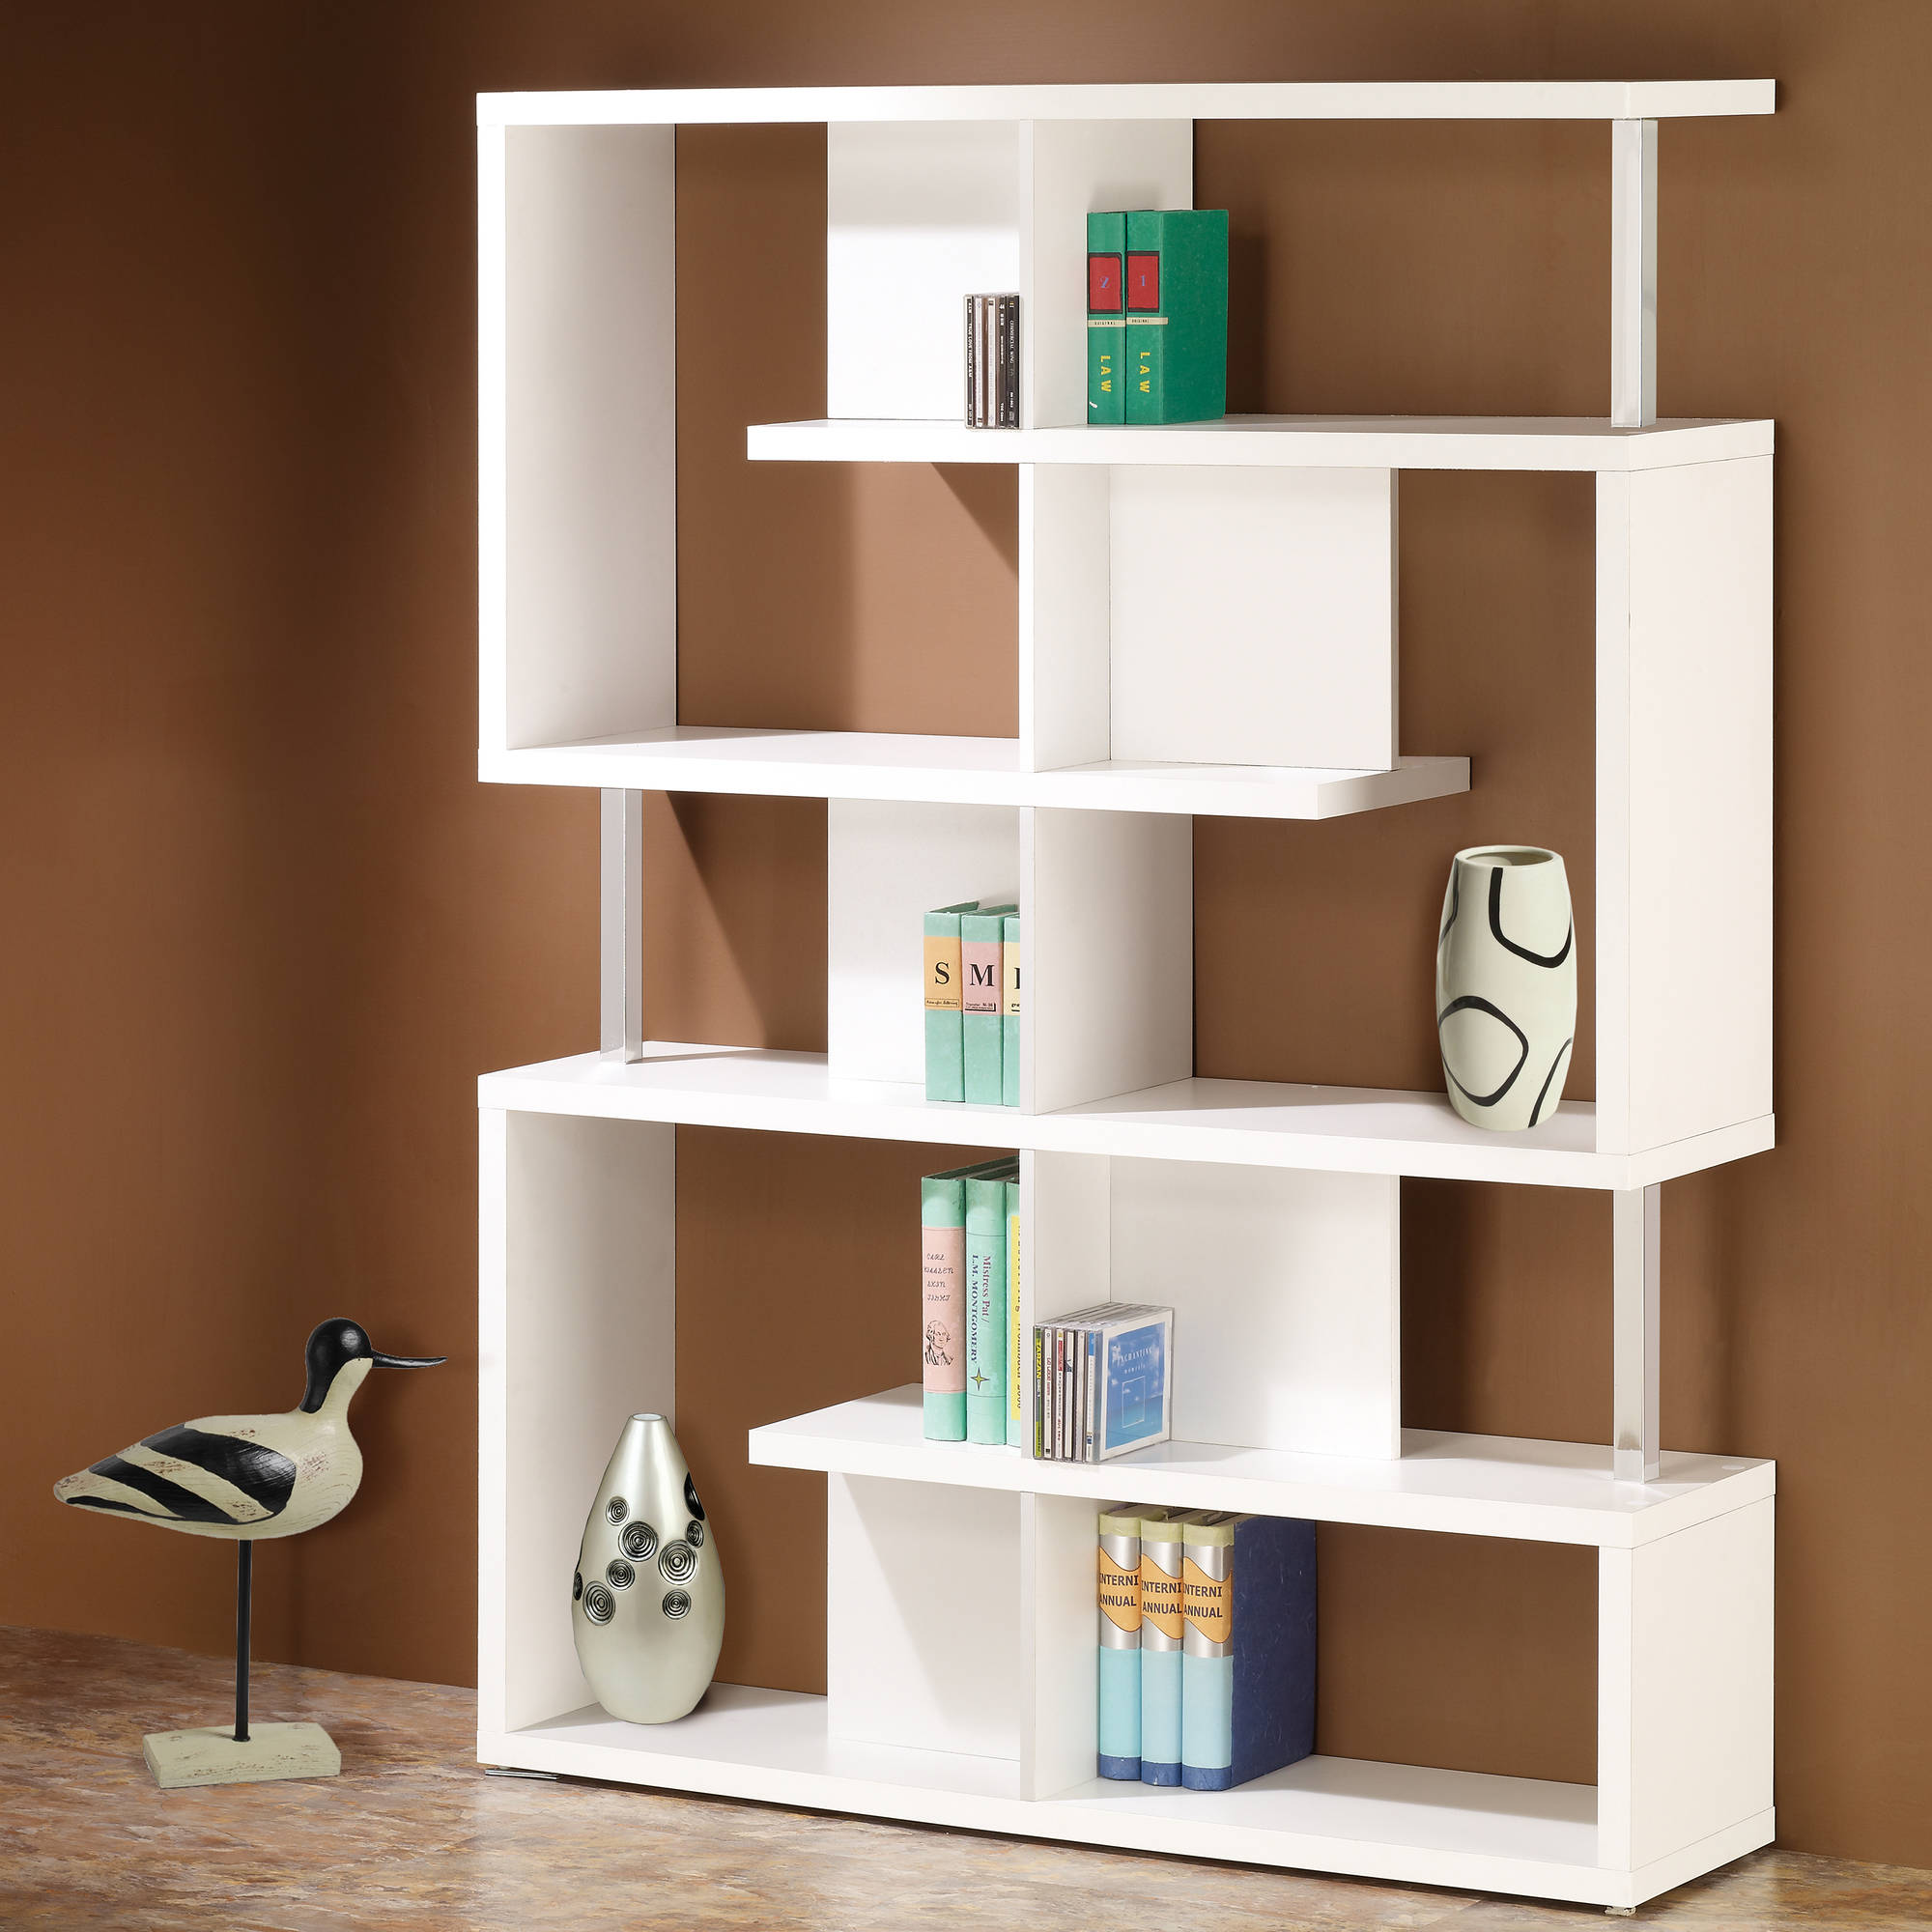 Manchester United Bedroom Accessories Furniture Every Day Low Prices Walmartcom